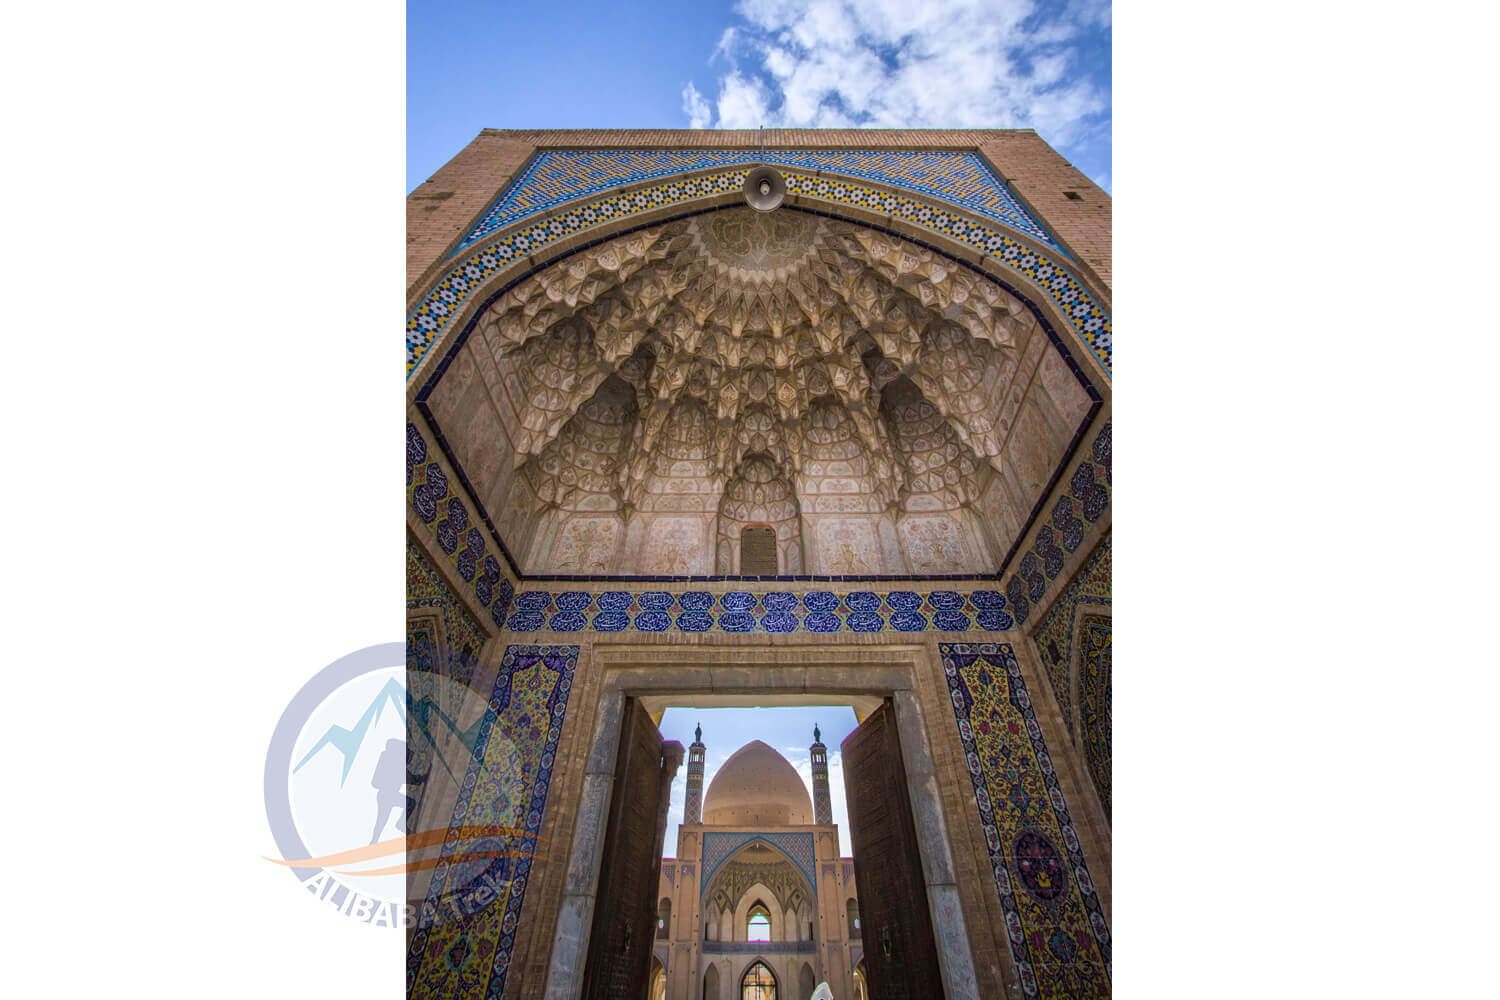 Alibabatrek iran deserts and culture tour Agha Bozorg Mosque